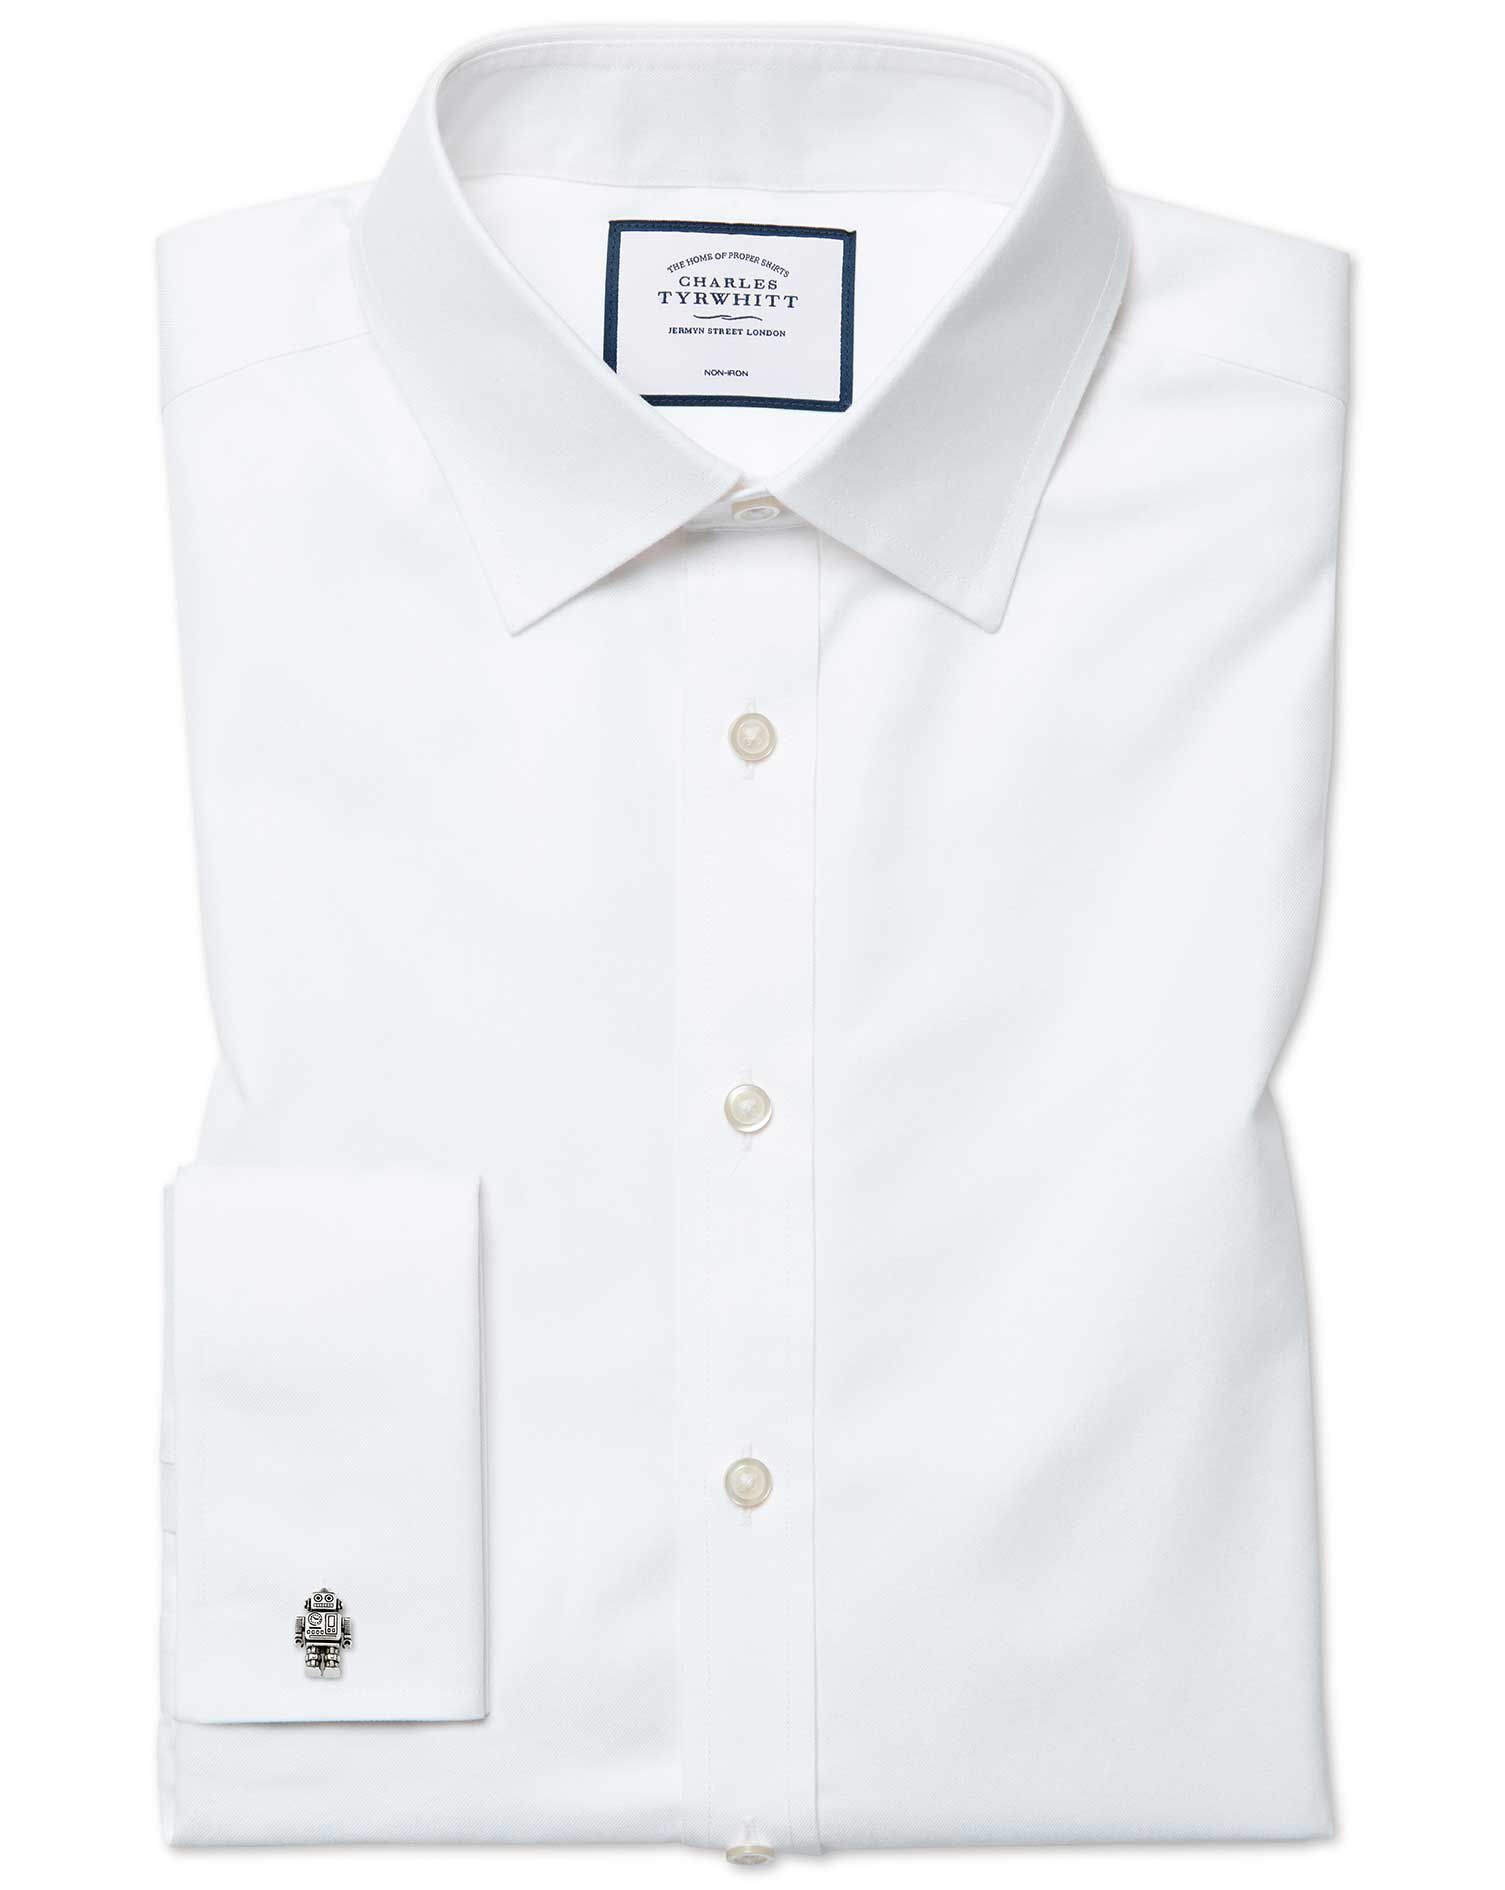 Slim Fit Cutaway Non-Iron Twill White Cotton Formal Shirt Double Cuff Size 17/38 by Charles Tyrwhitt